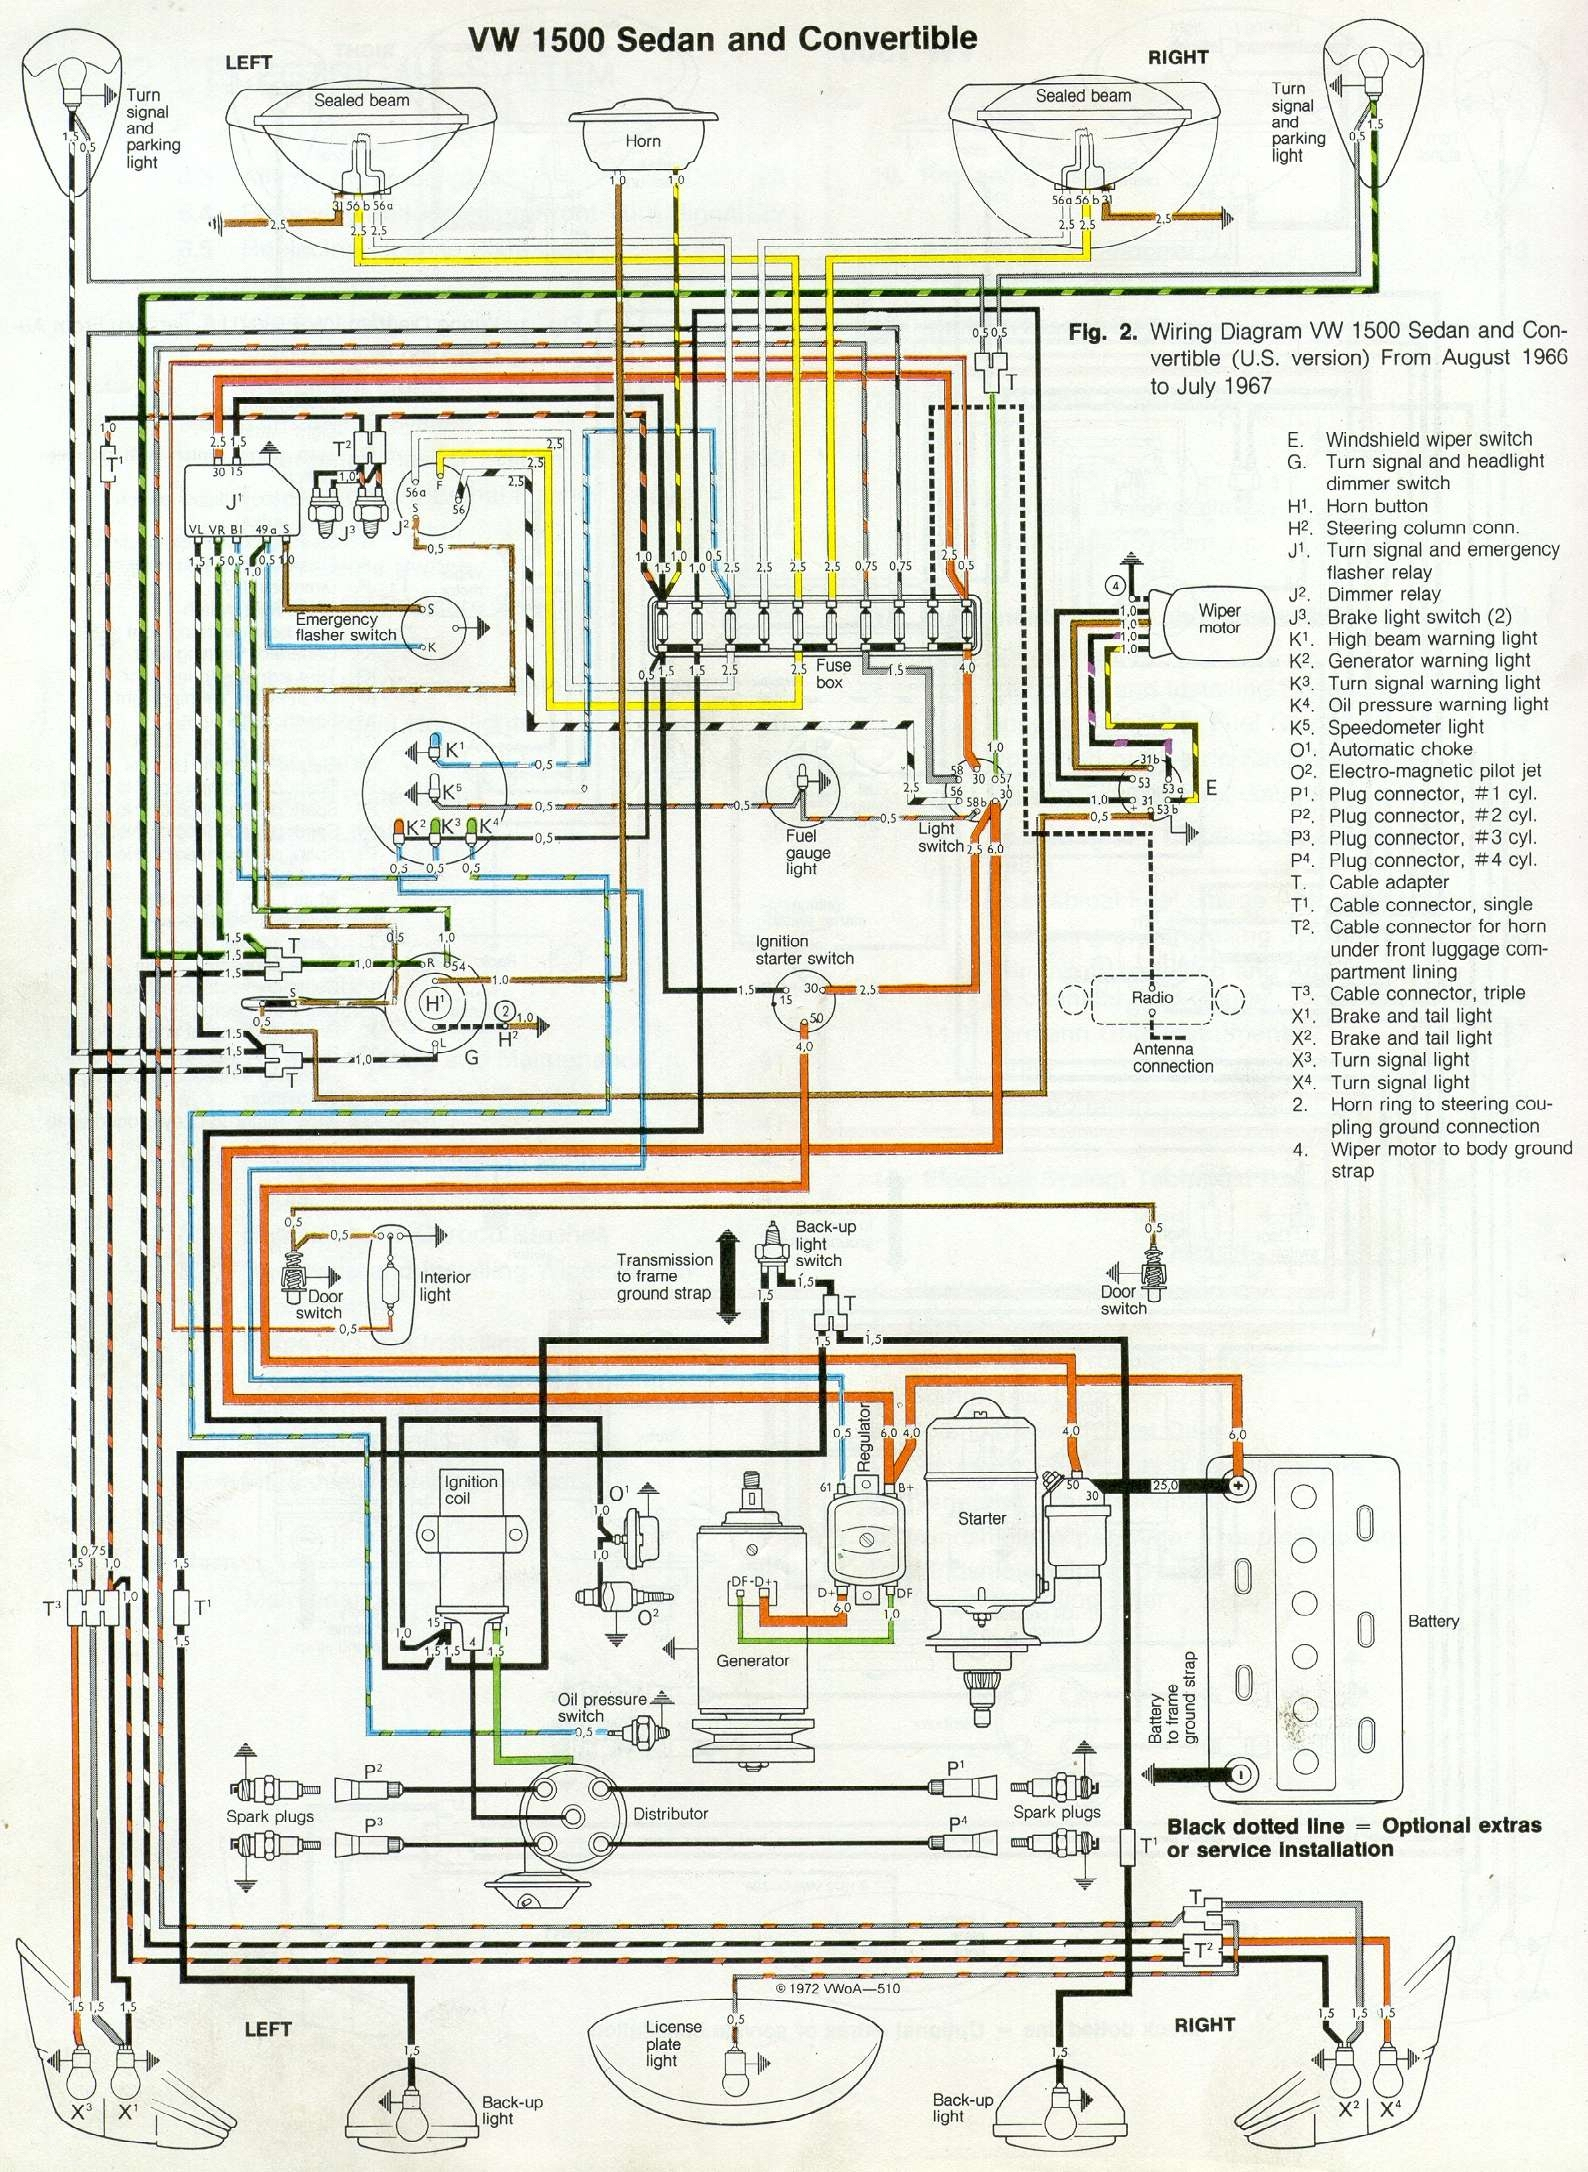 66 and 67 vw beetle wiring diagram 1967 vw beetle rh 1967beetle com 1966 vw bug fuse box diagram 1966 vw beetle electrical diagram